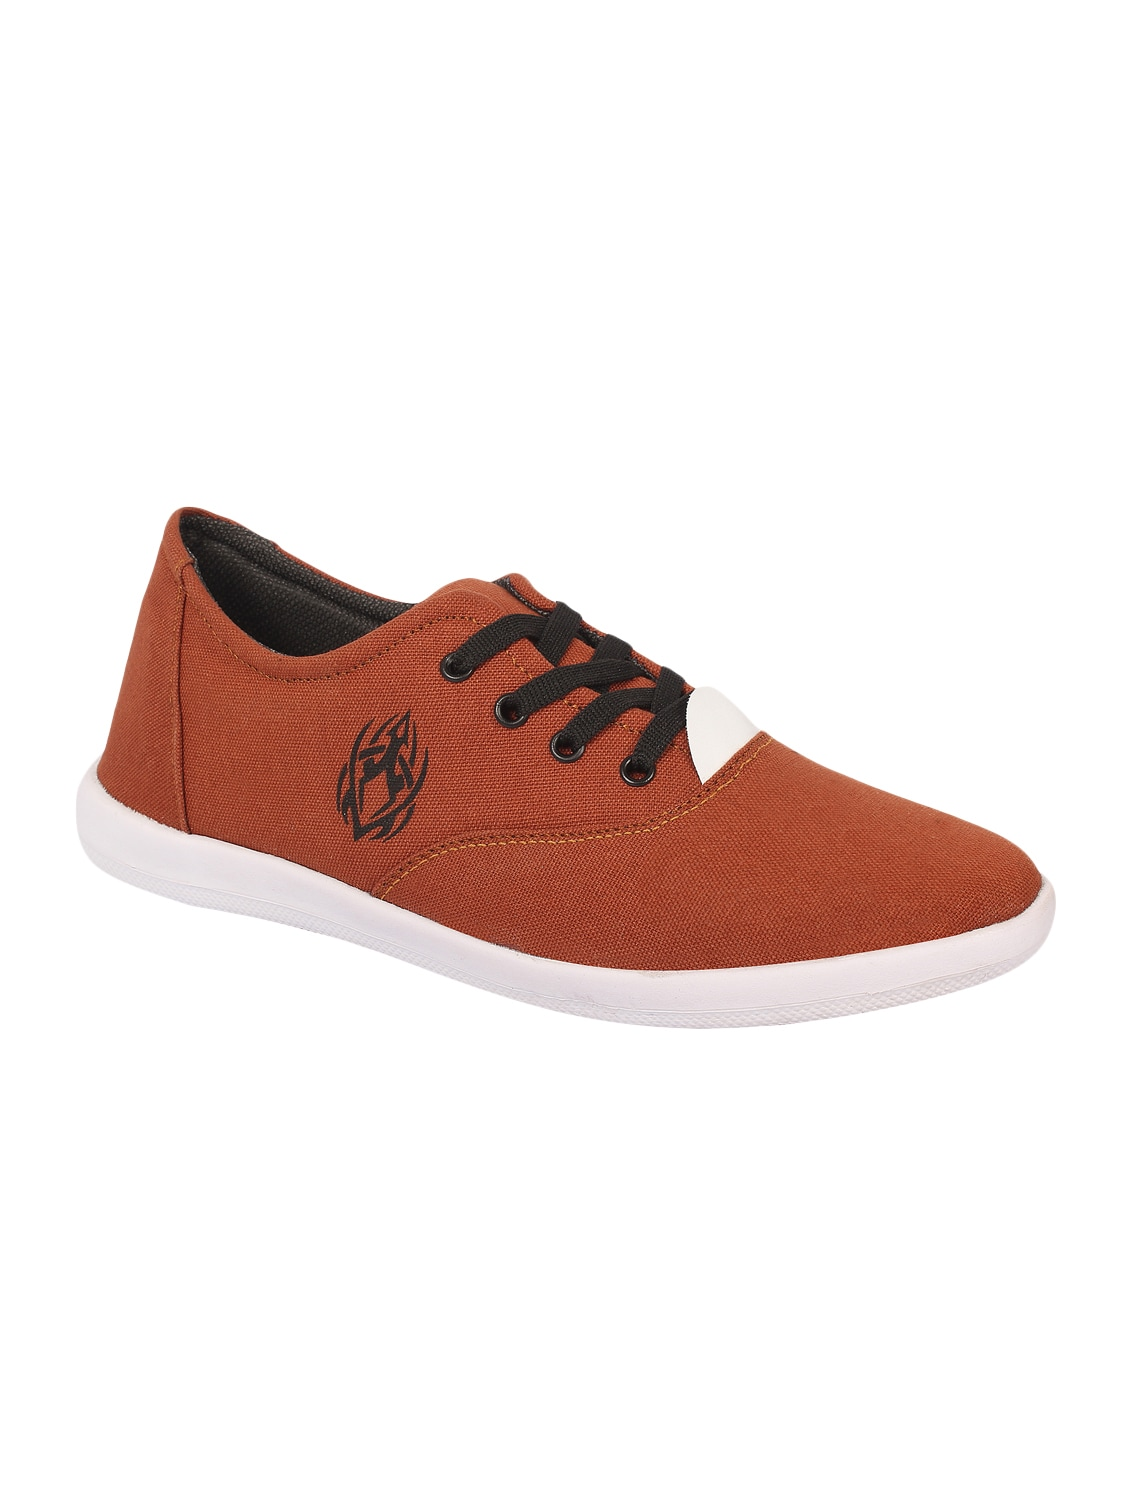 Brown Canvas Lace Up Sneakers